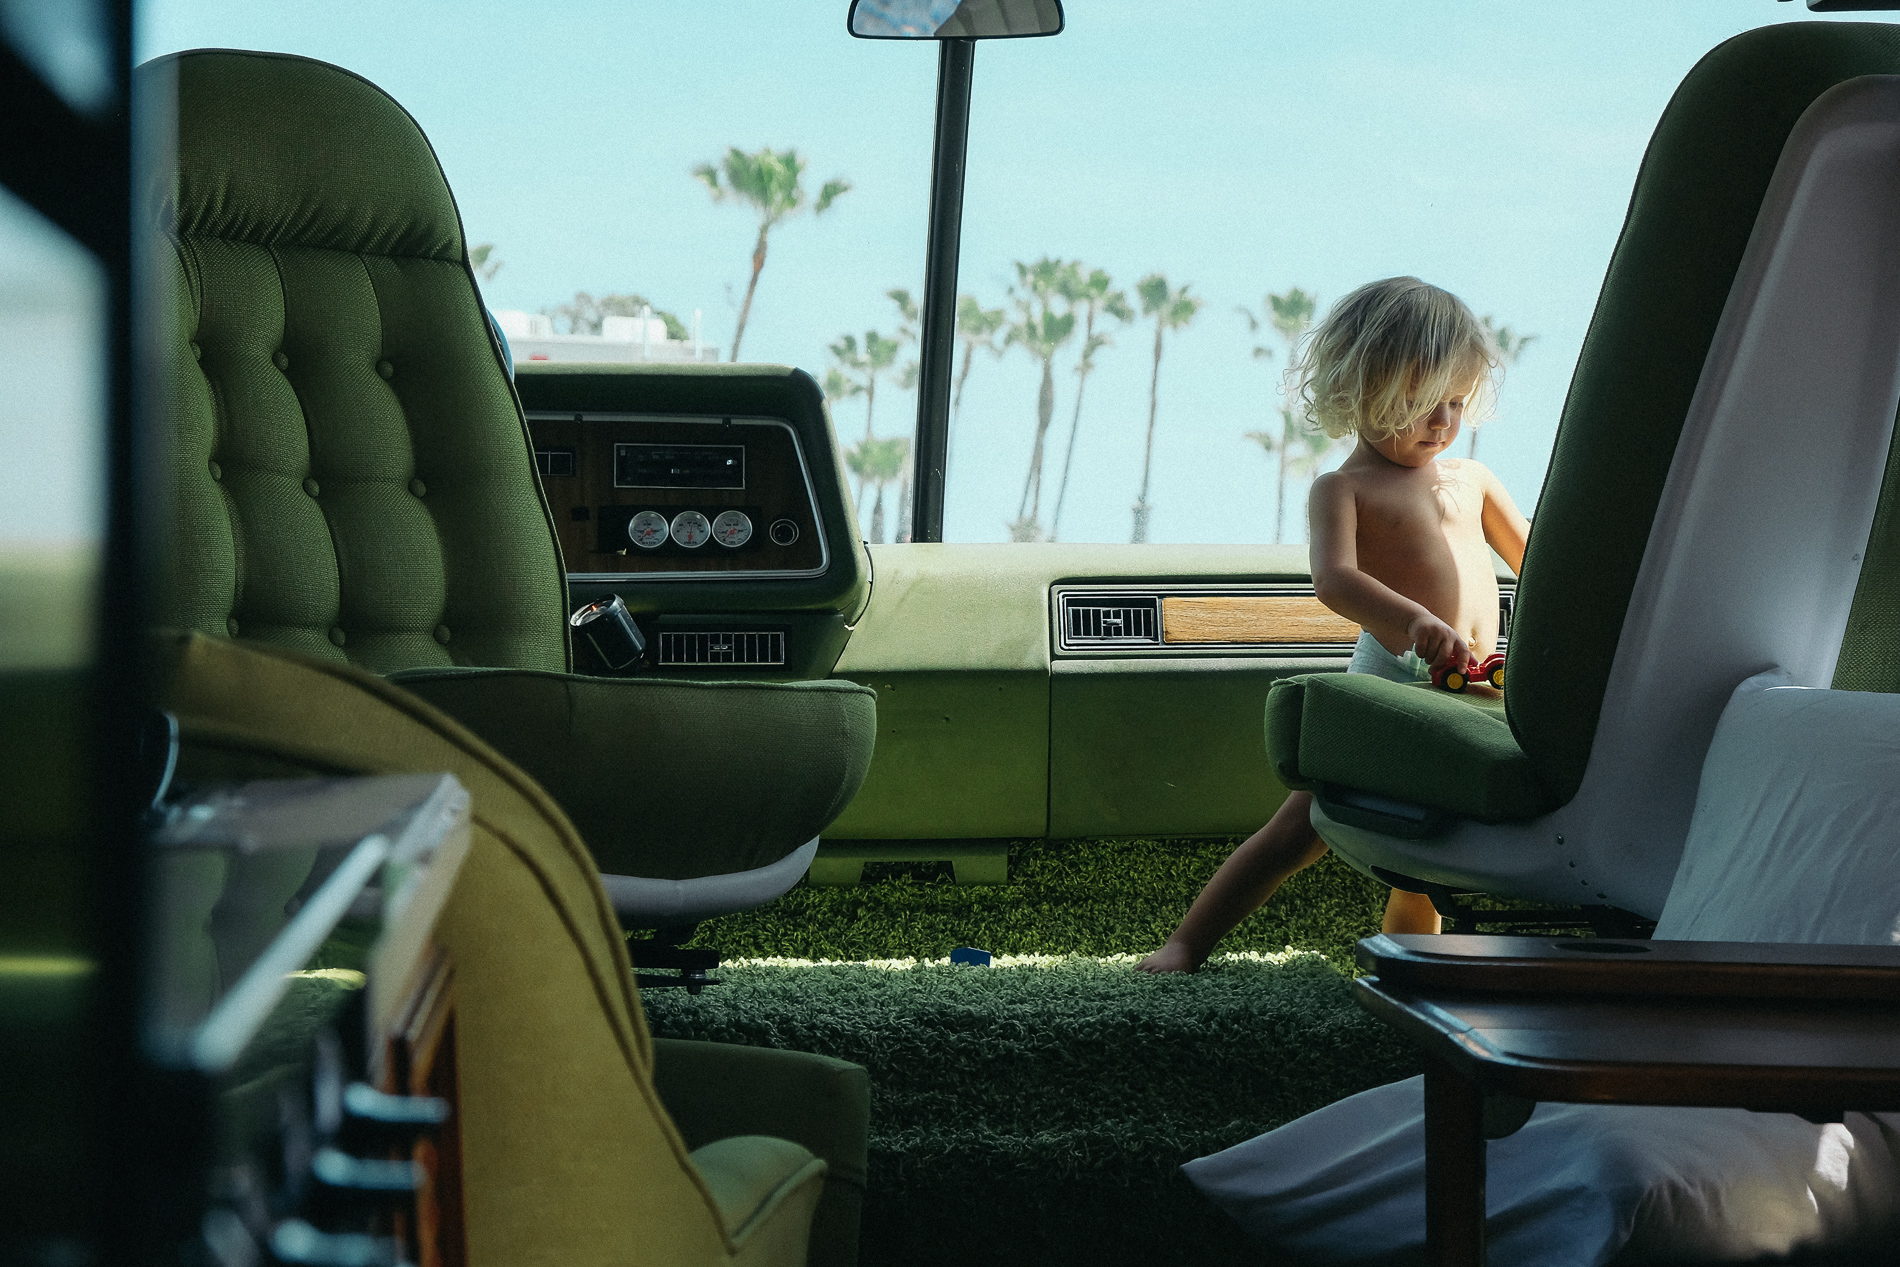 little-driver-palm-beach-1977-green-house